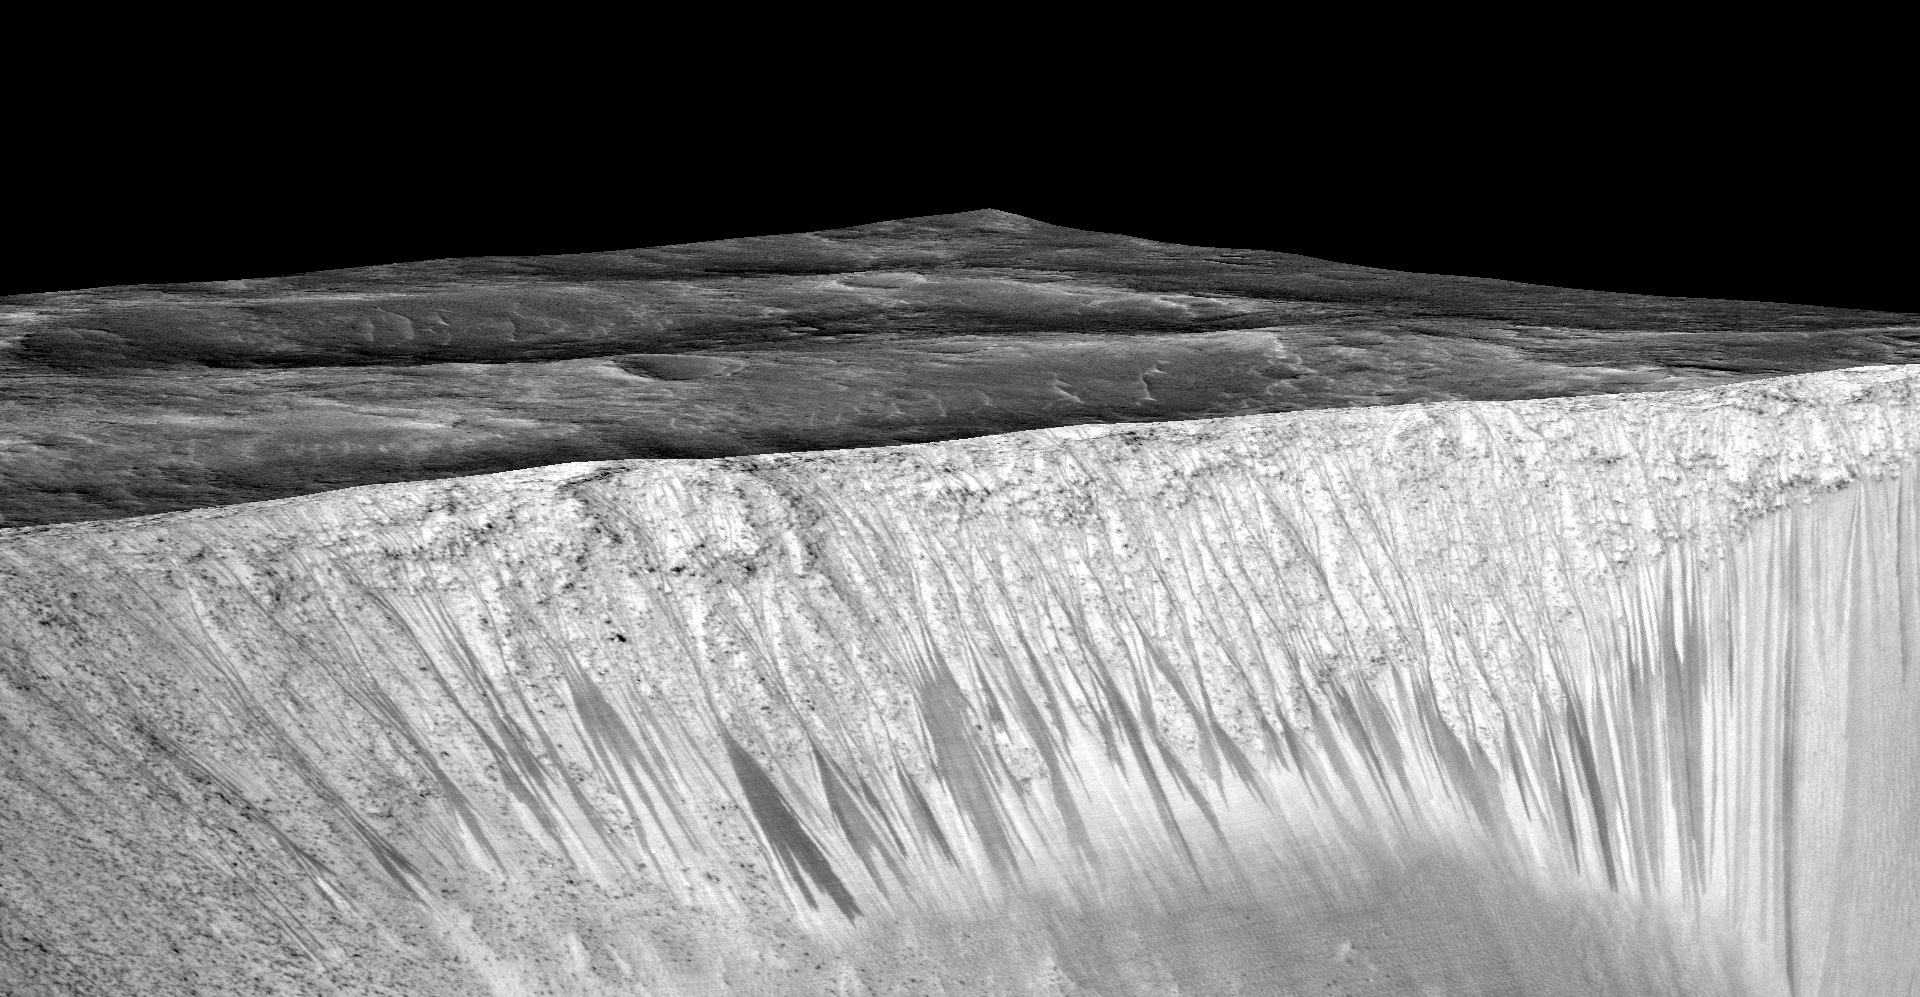 In the Martian summer, the walls of Garni crater are covered in RSL.